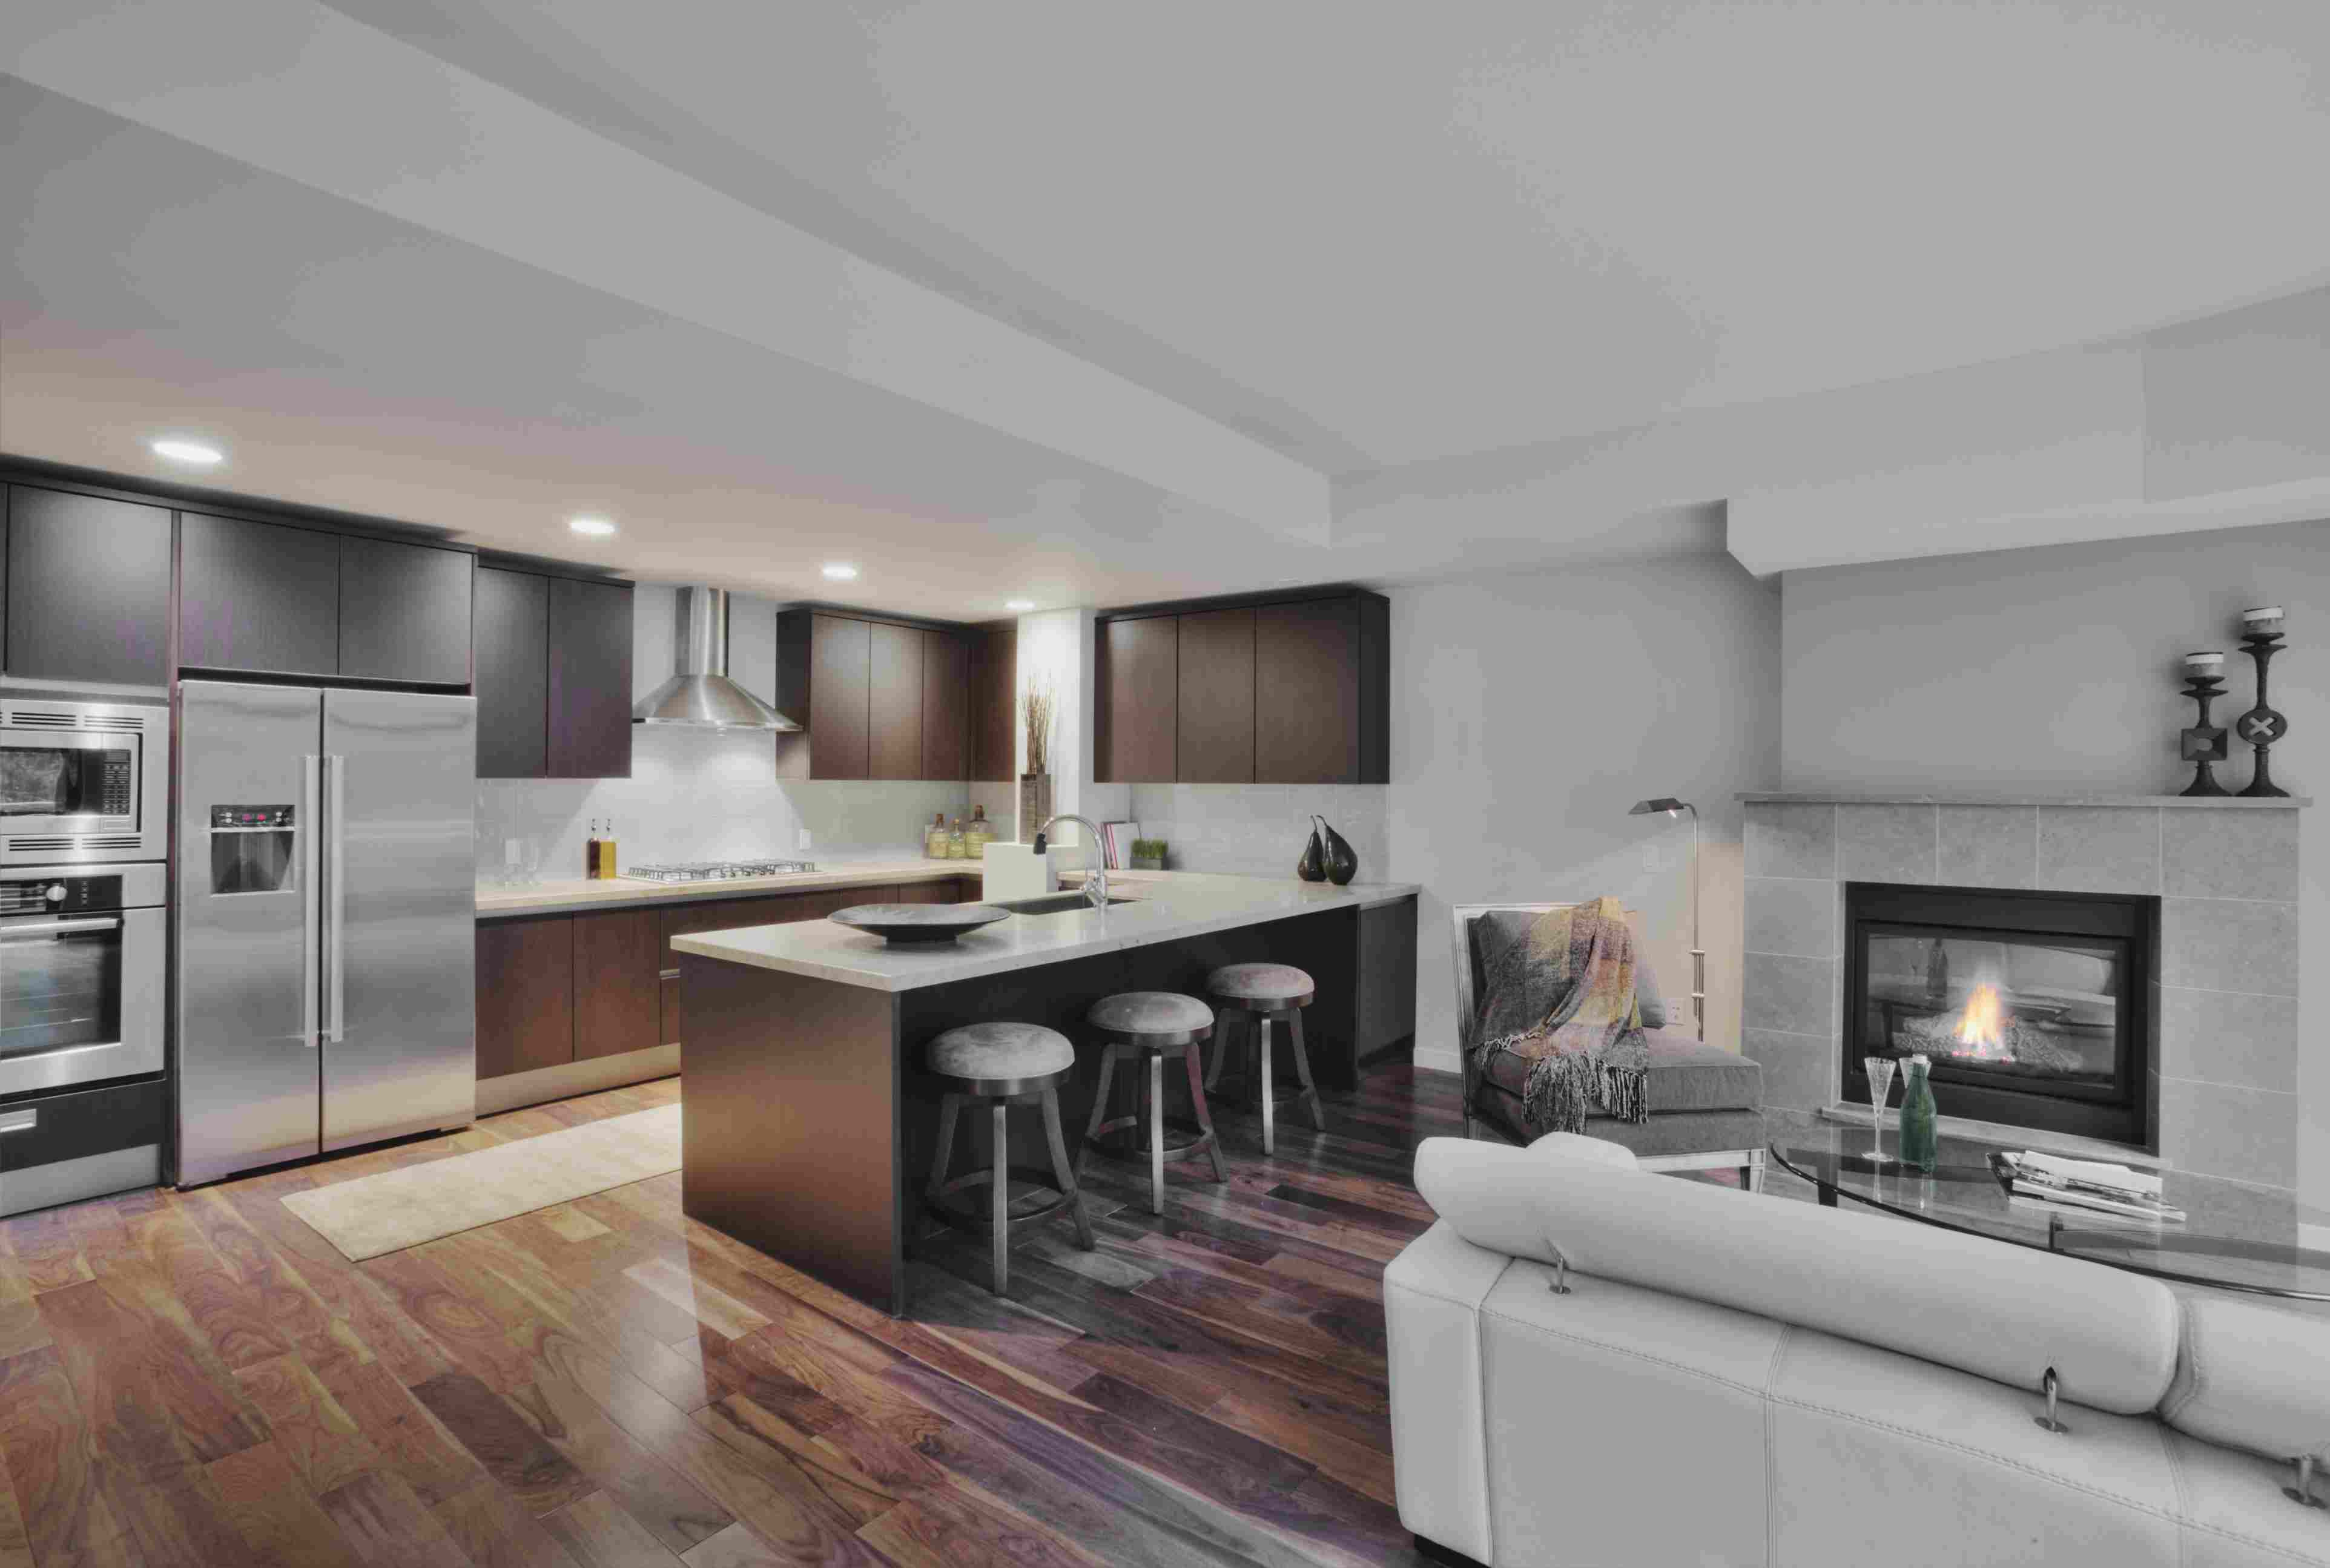 best hardwood flooring for contemporary homes of gorgeous kitchens with wooden flooring throughout open plan kitchen with wood floor 188074734 spaces images 56a4a1673df78cf77283536c